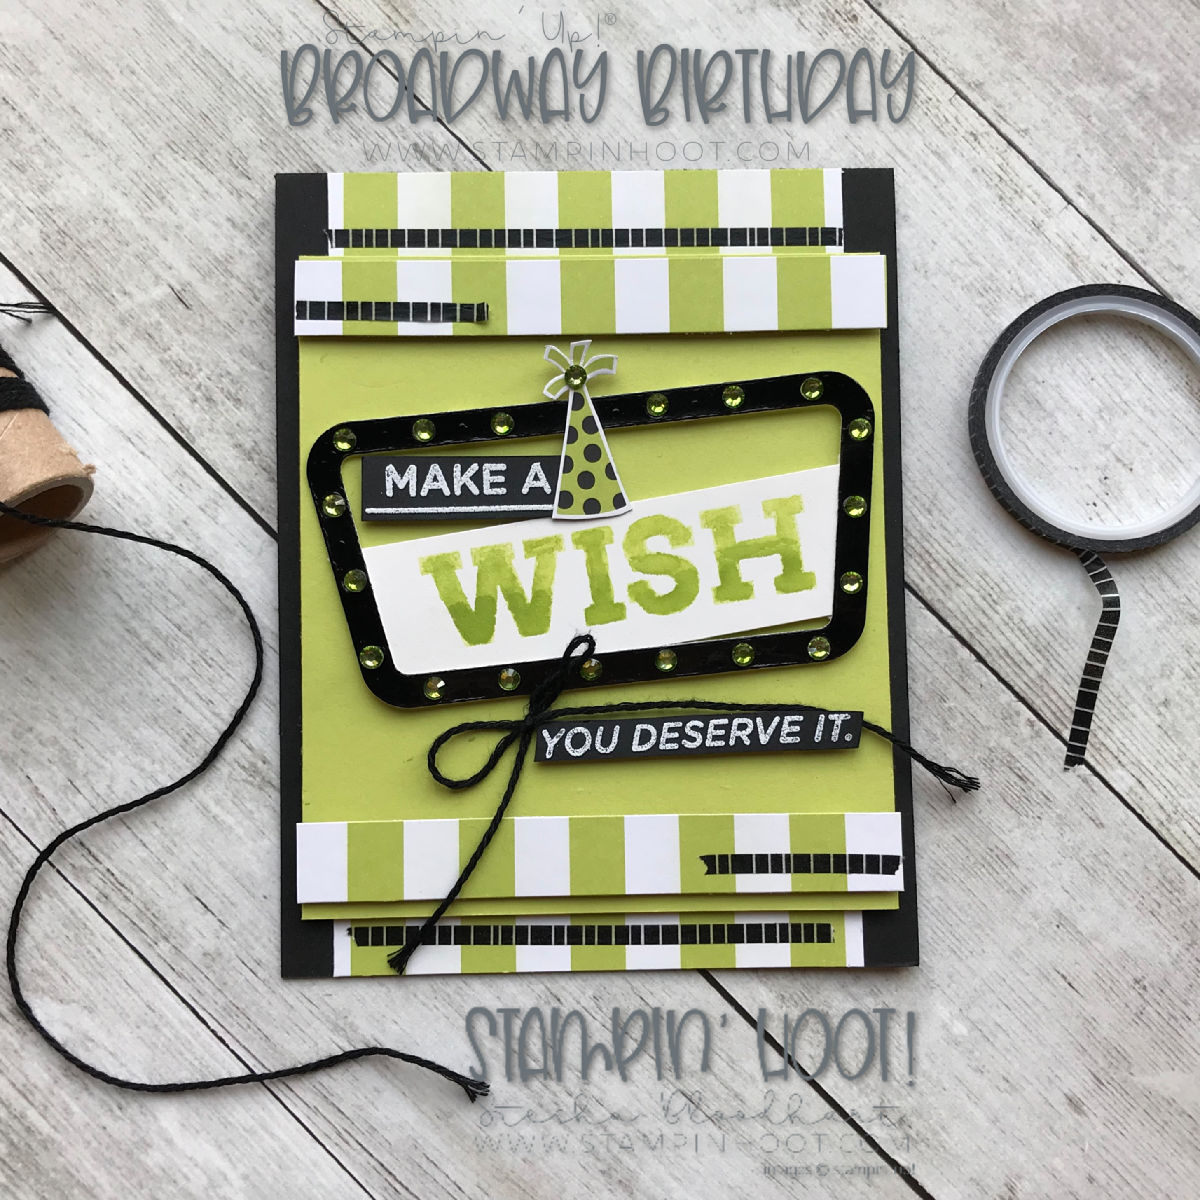 Broadway Birthday Bundle by Stampin' Up! Birthday Card by Stesha Bloodhart, Stampin Hoot! #steshabloodhart #stampinhoot #tgifc183